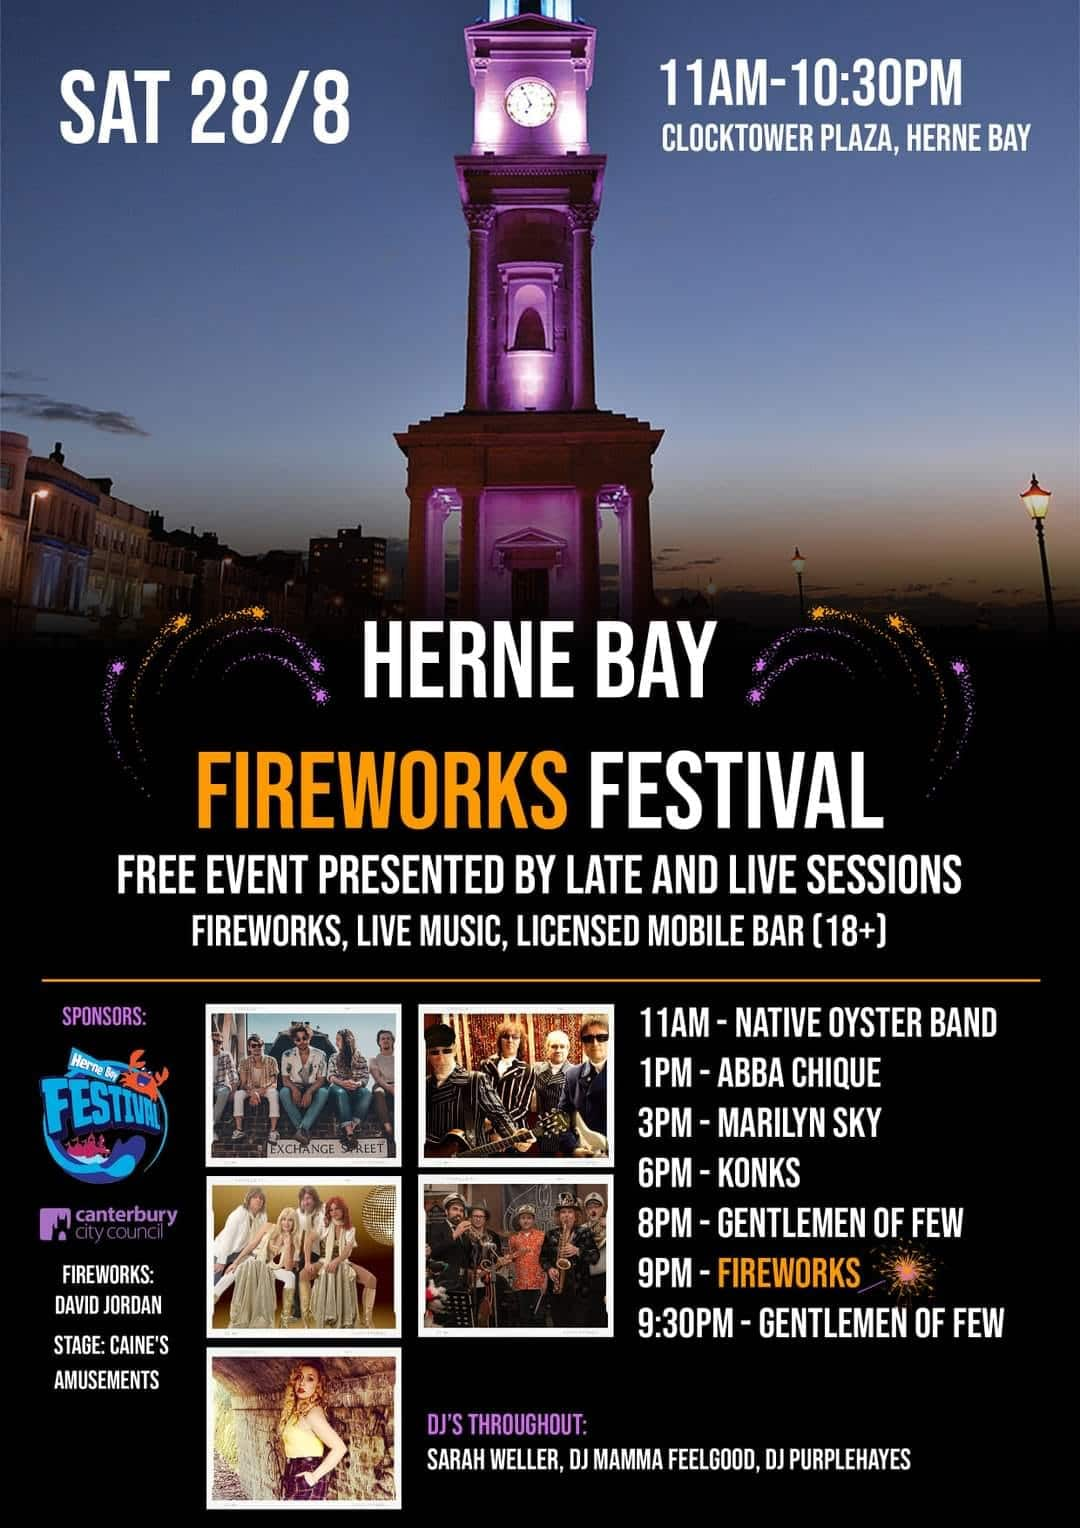 Live Music on The Plaza including fireworks at 9pm